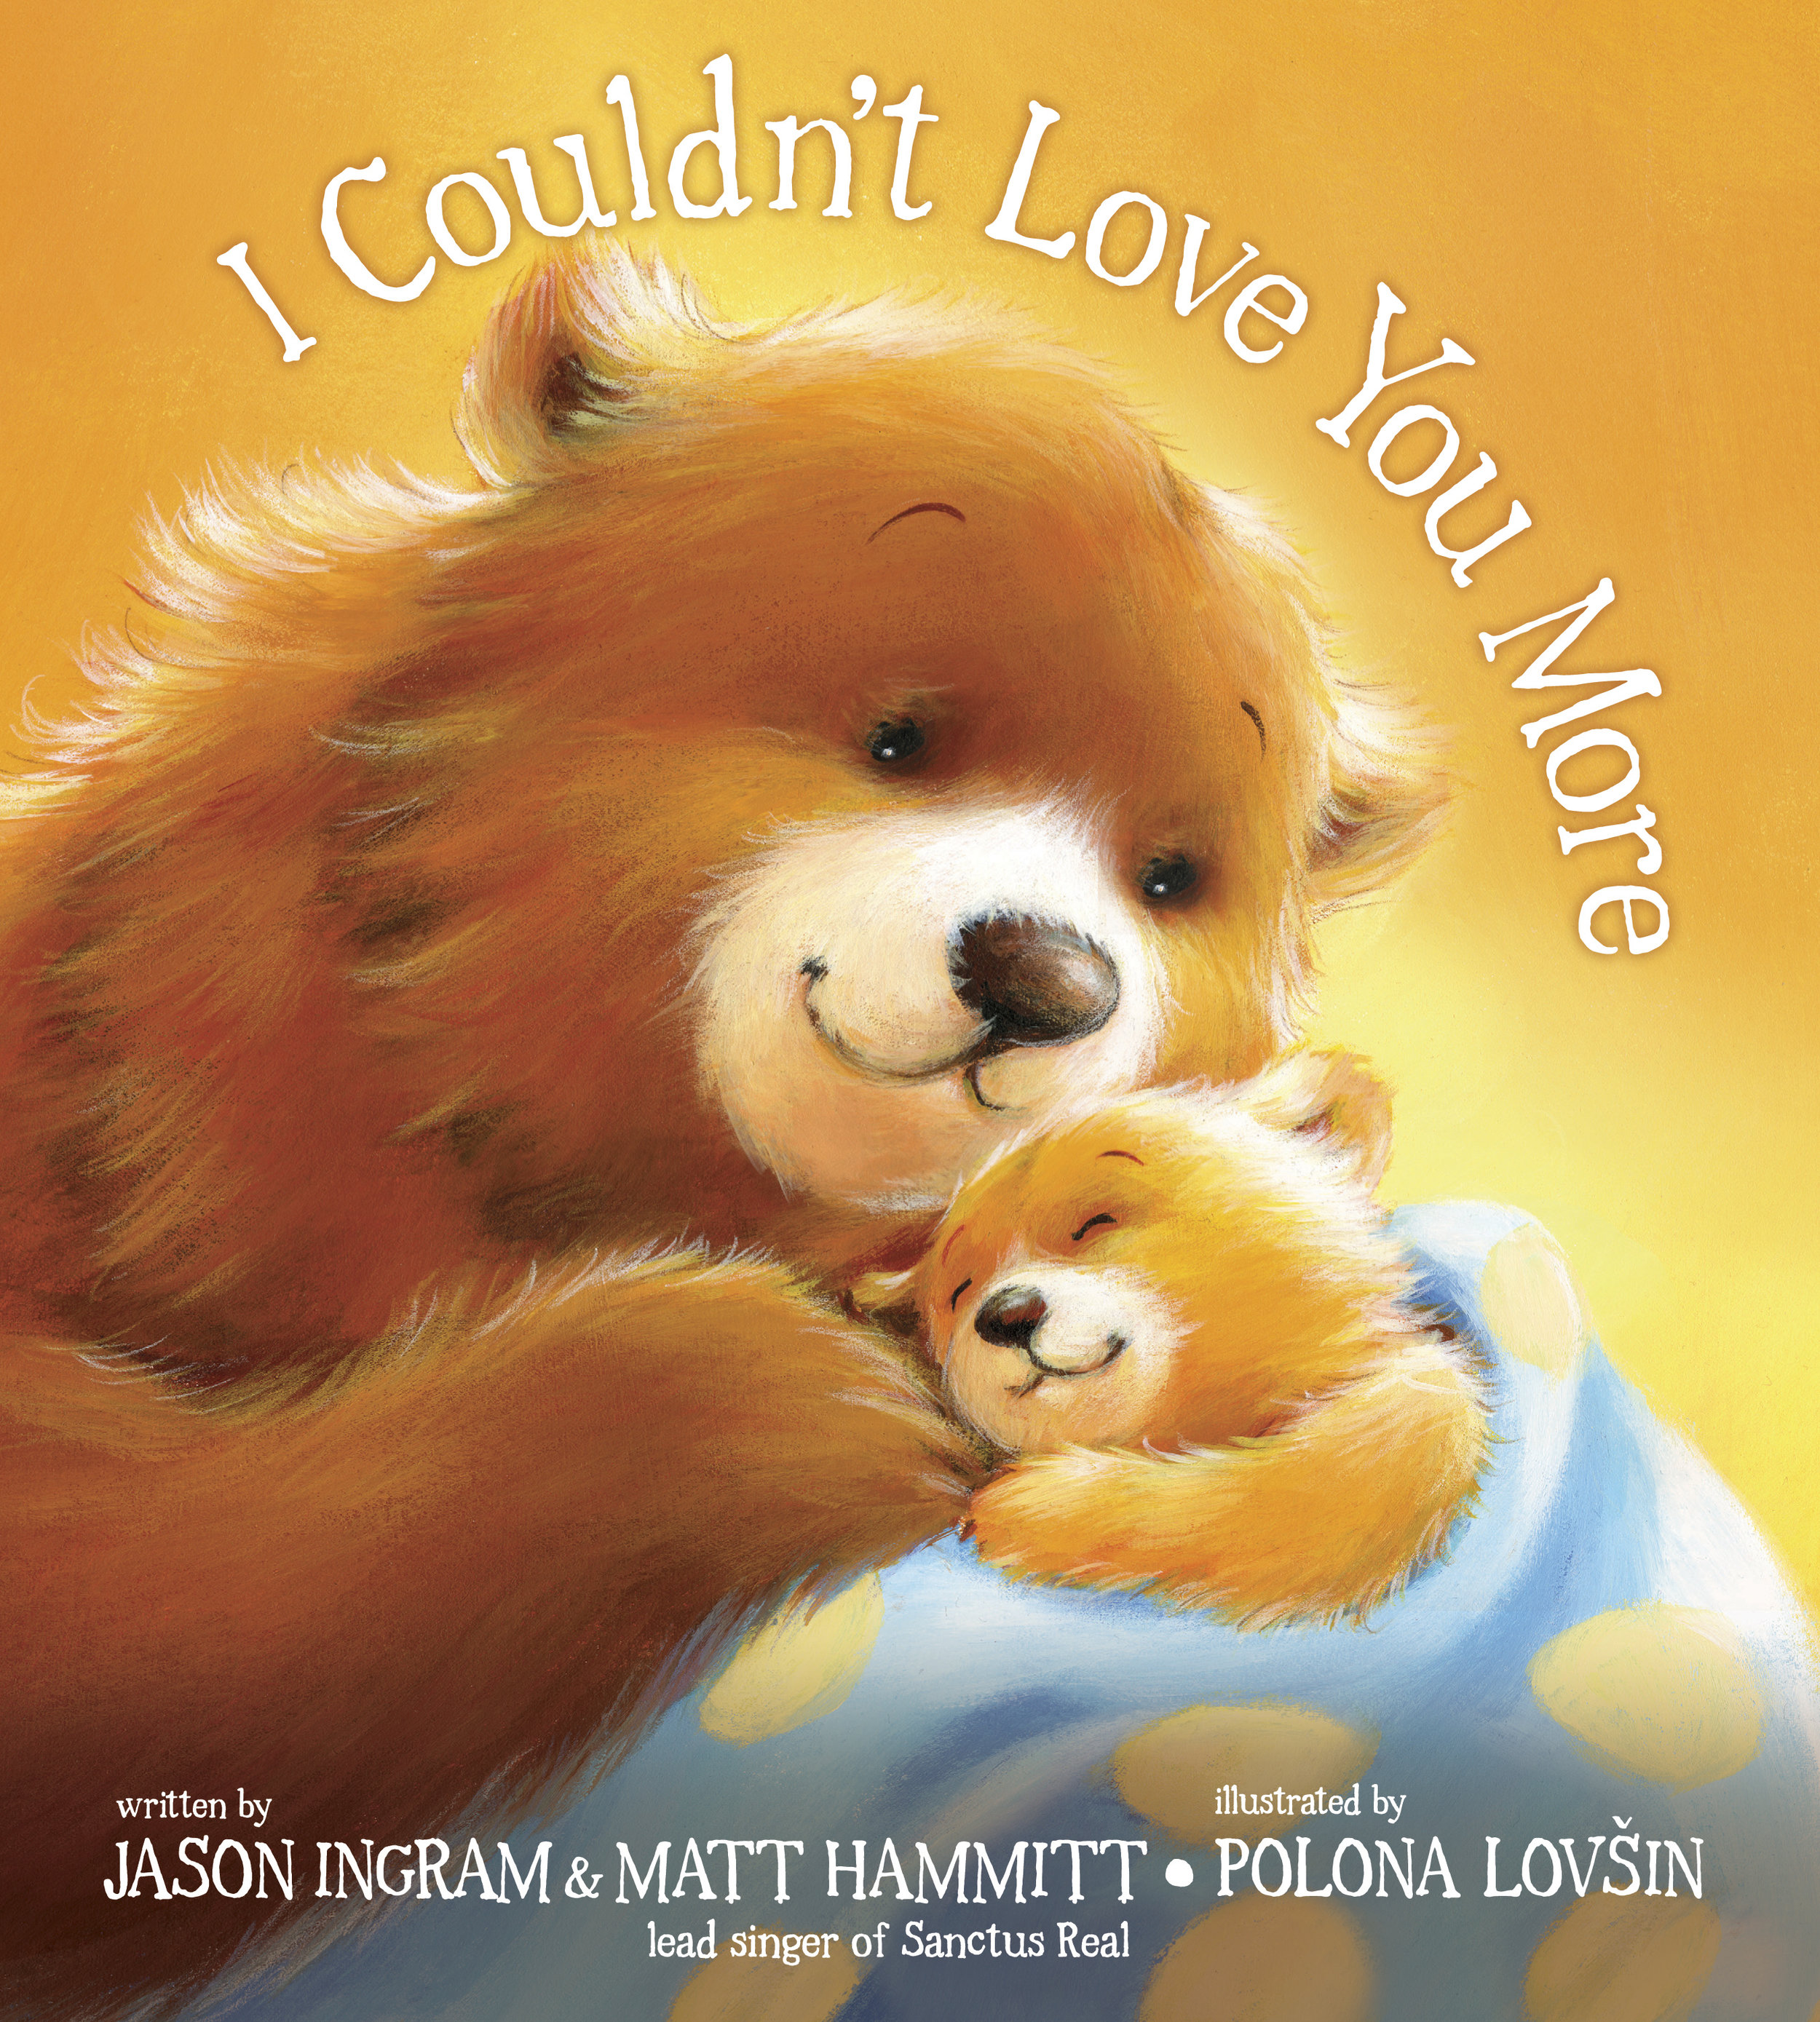 In the same manner as touching picture books like bestsellers  Let Me Hold You Longer  and  Love You Forever, I Couldn't Love You More  tells a sweet, loving, yet powerful message: I couldn't love you more, but there is someone who does. Through the unique relationship of adorable animals, the book shares that Christ is always with you and he loves you more than you can imagine. This engaging picture book combines lovable and irresistible images with the lyrics from the song (co-written by Jason Ingram and Matt Hammitt).